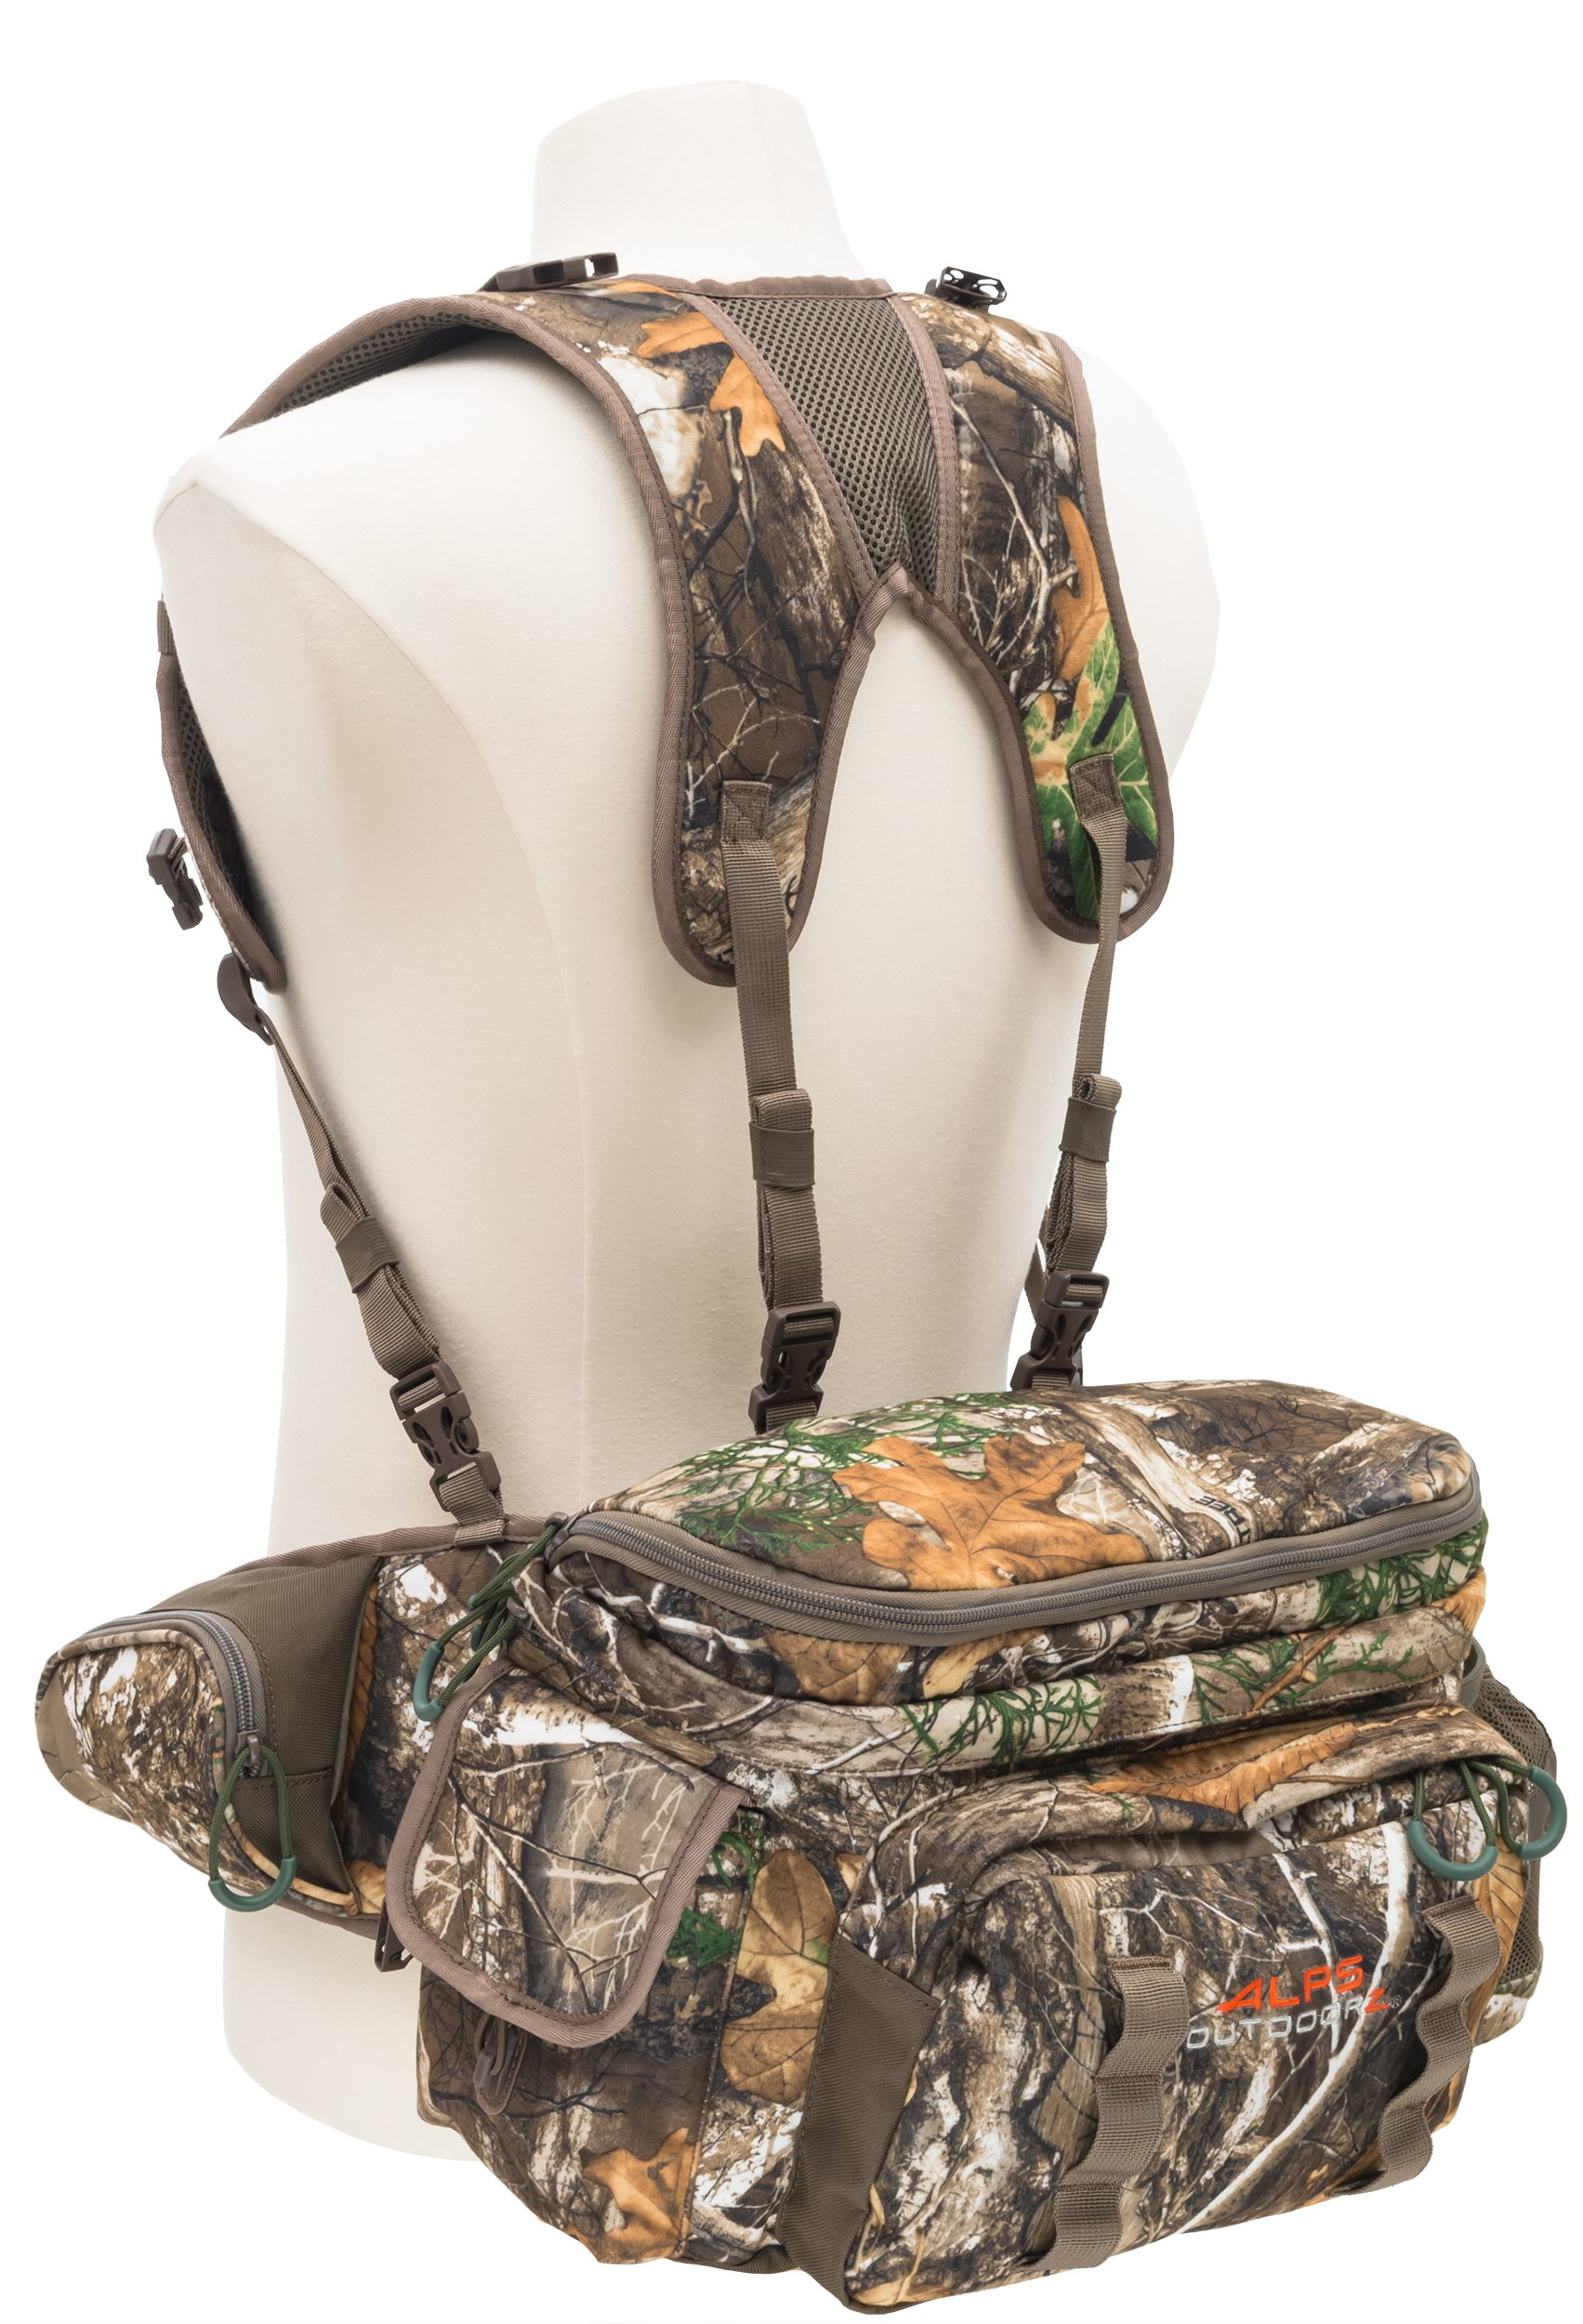 ALPS OutdoorZ Big Bear Hunting Day Pack, Realtree Edge by ALPS OutdoorZ